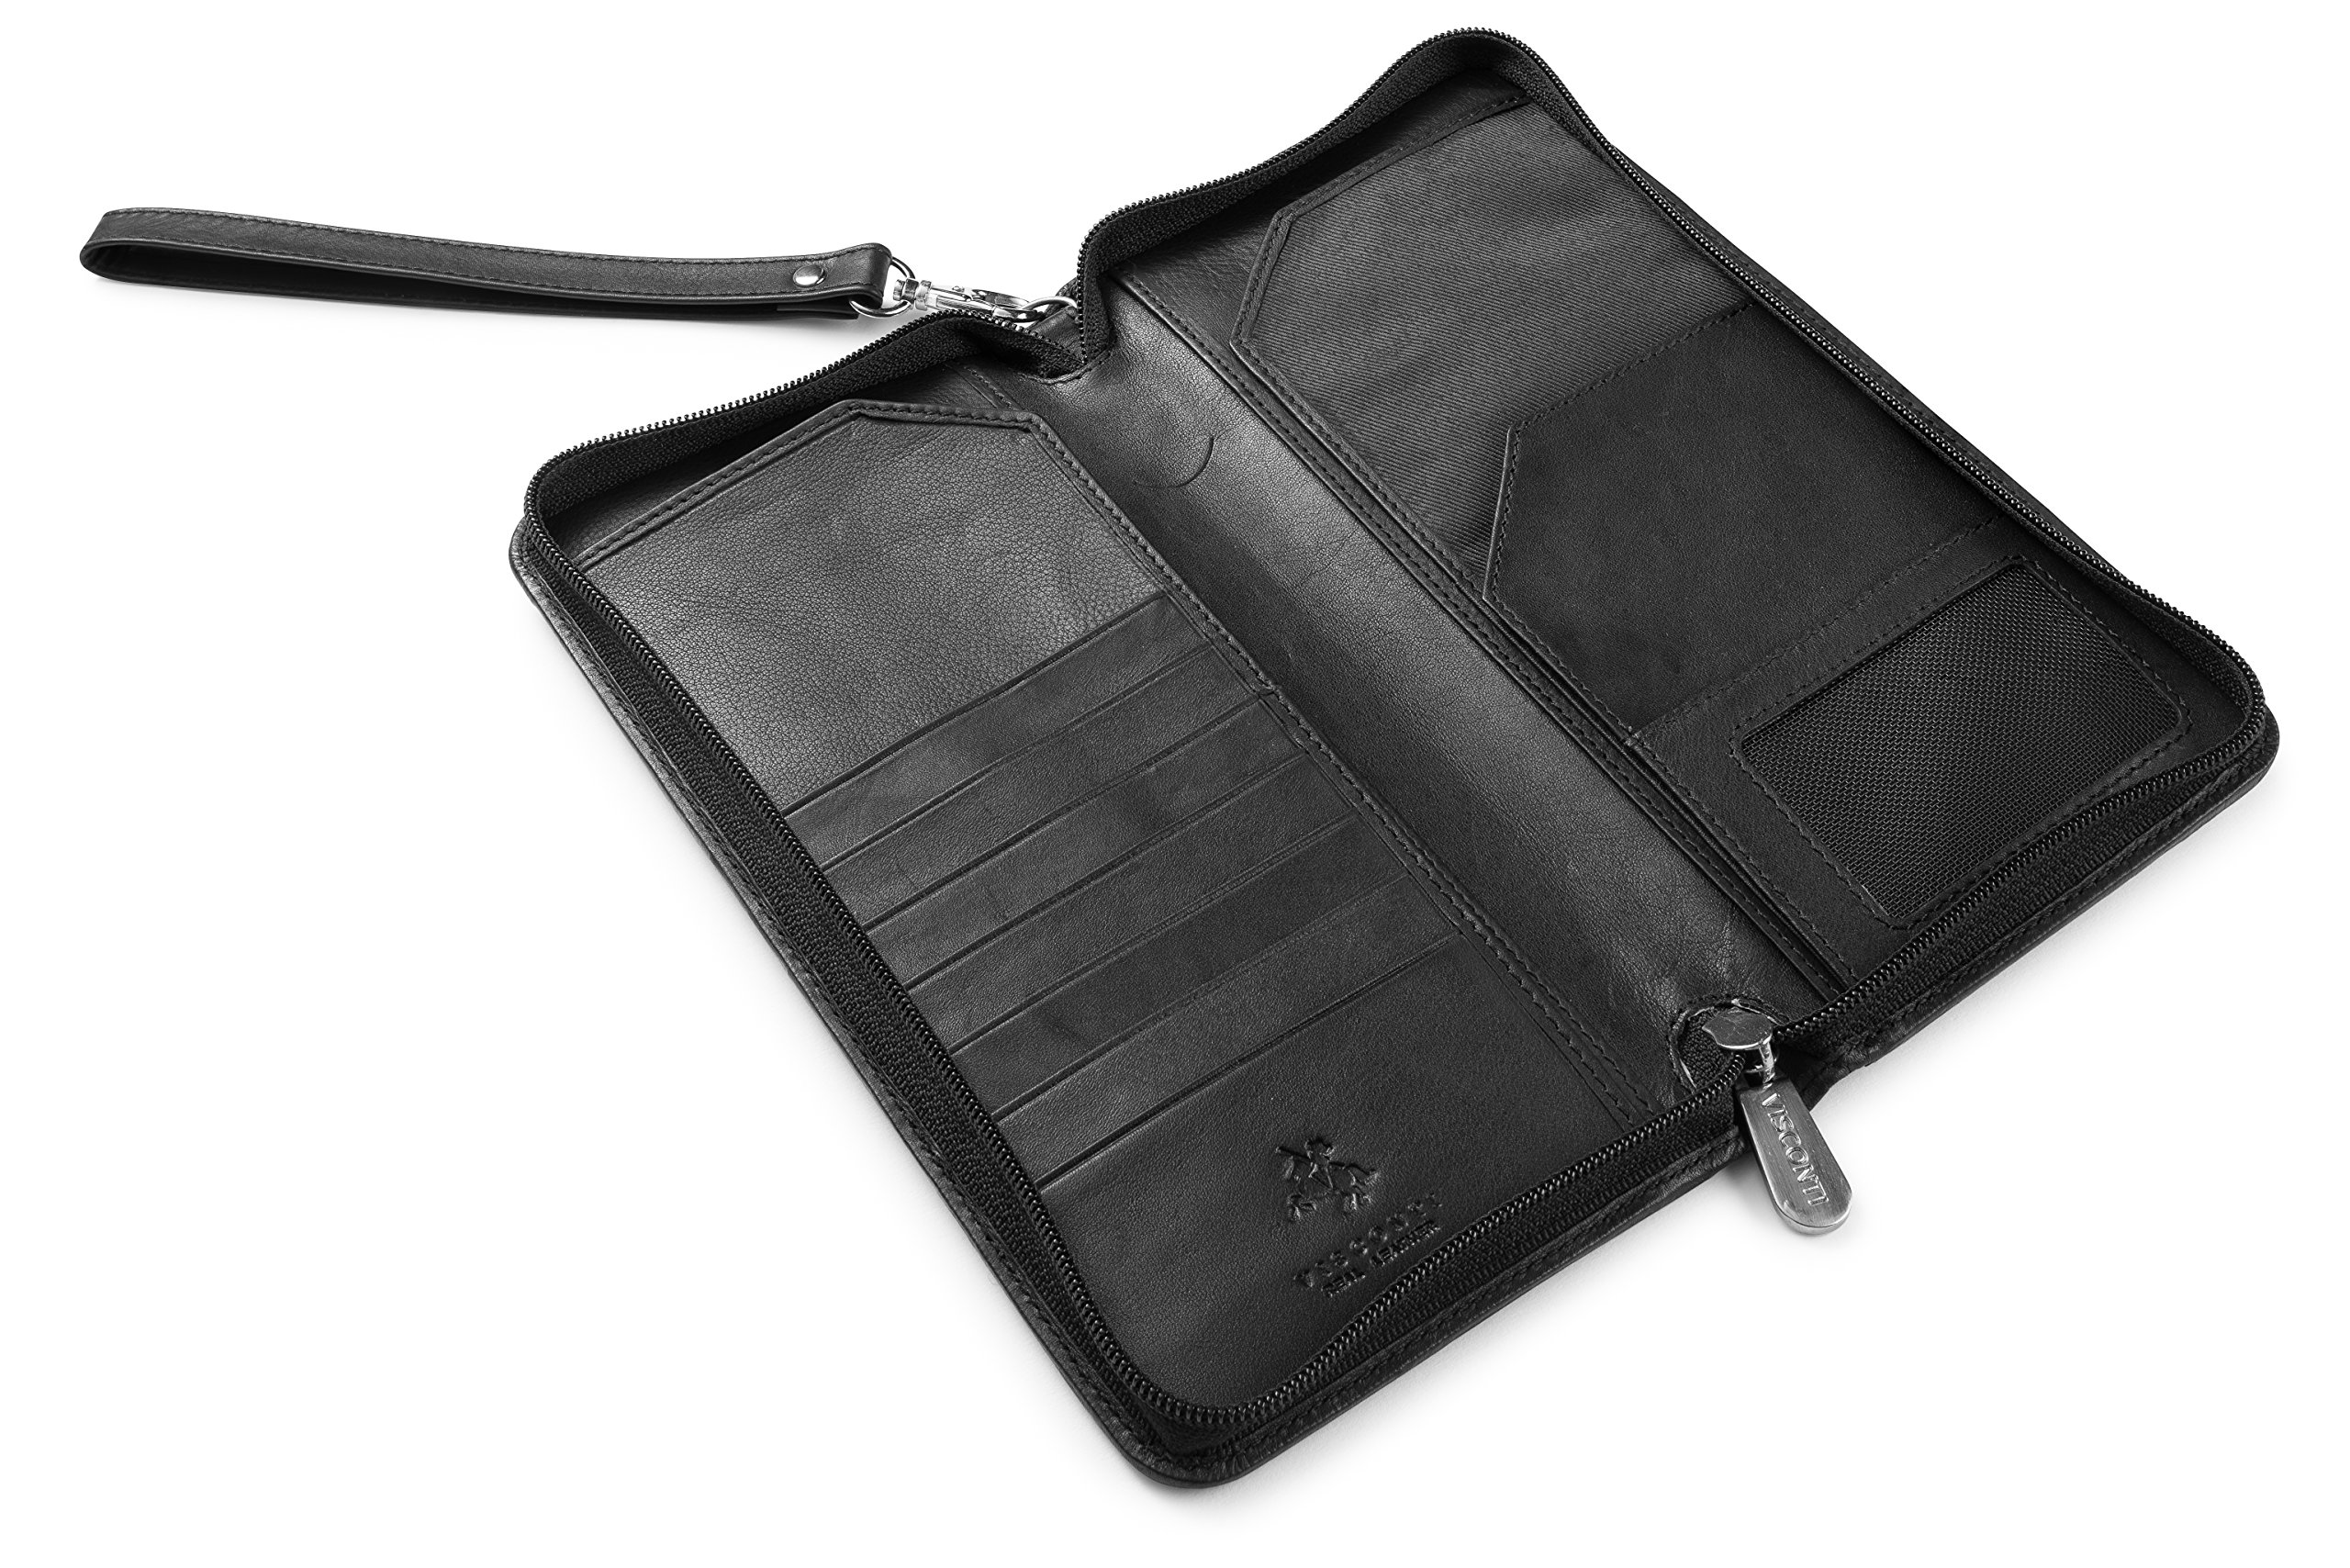 Visconti 1157 Large Leather Travel Wallet Planner for Credit Cards Tickets and Passports (Black)